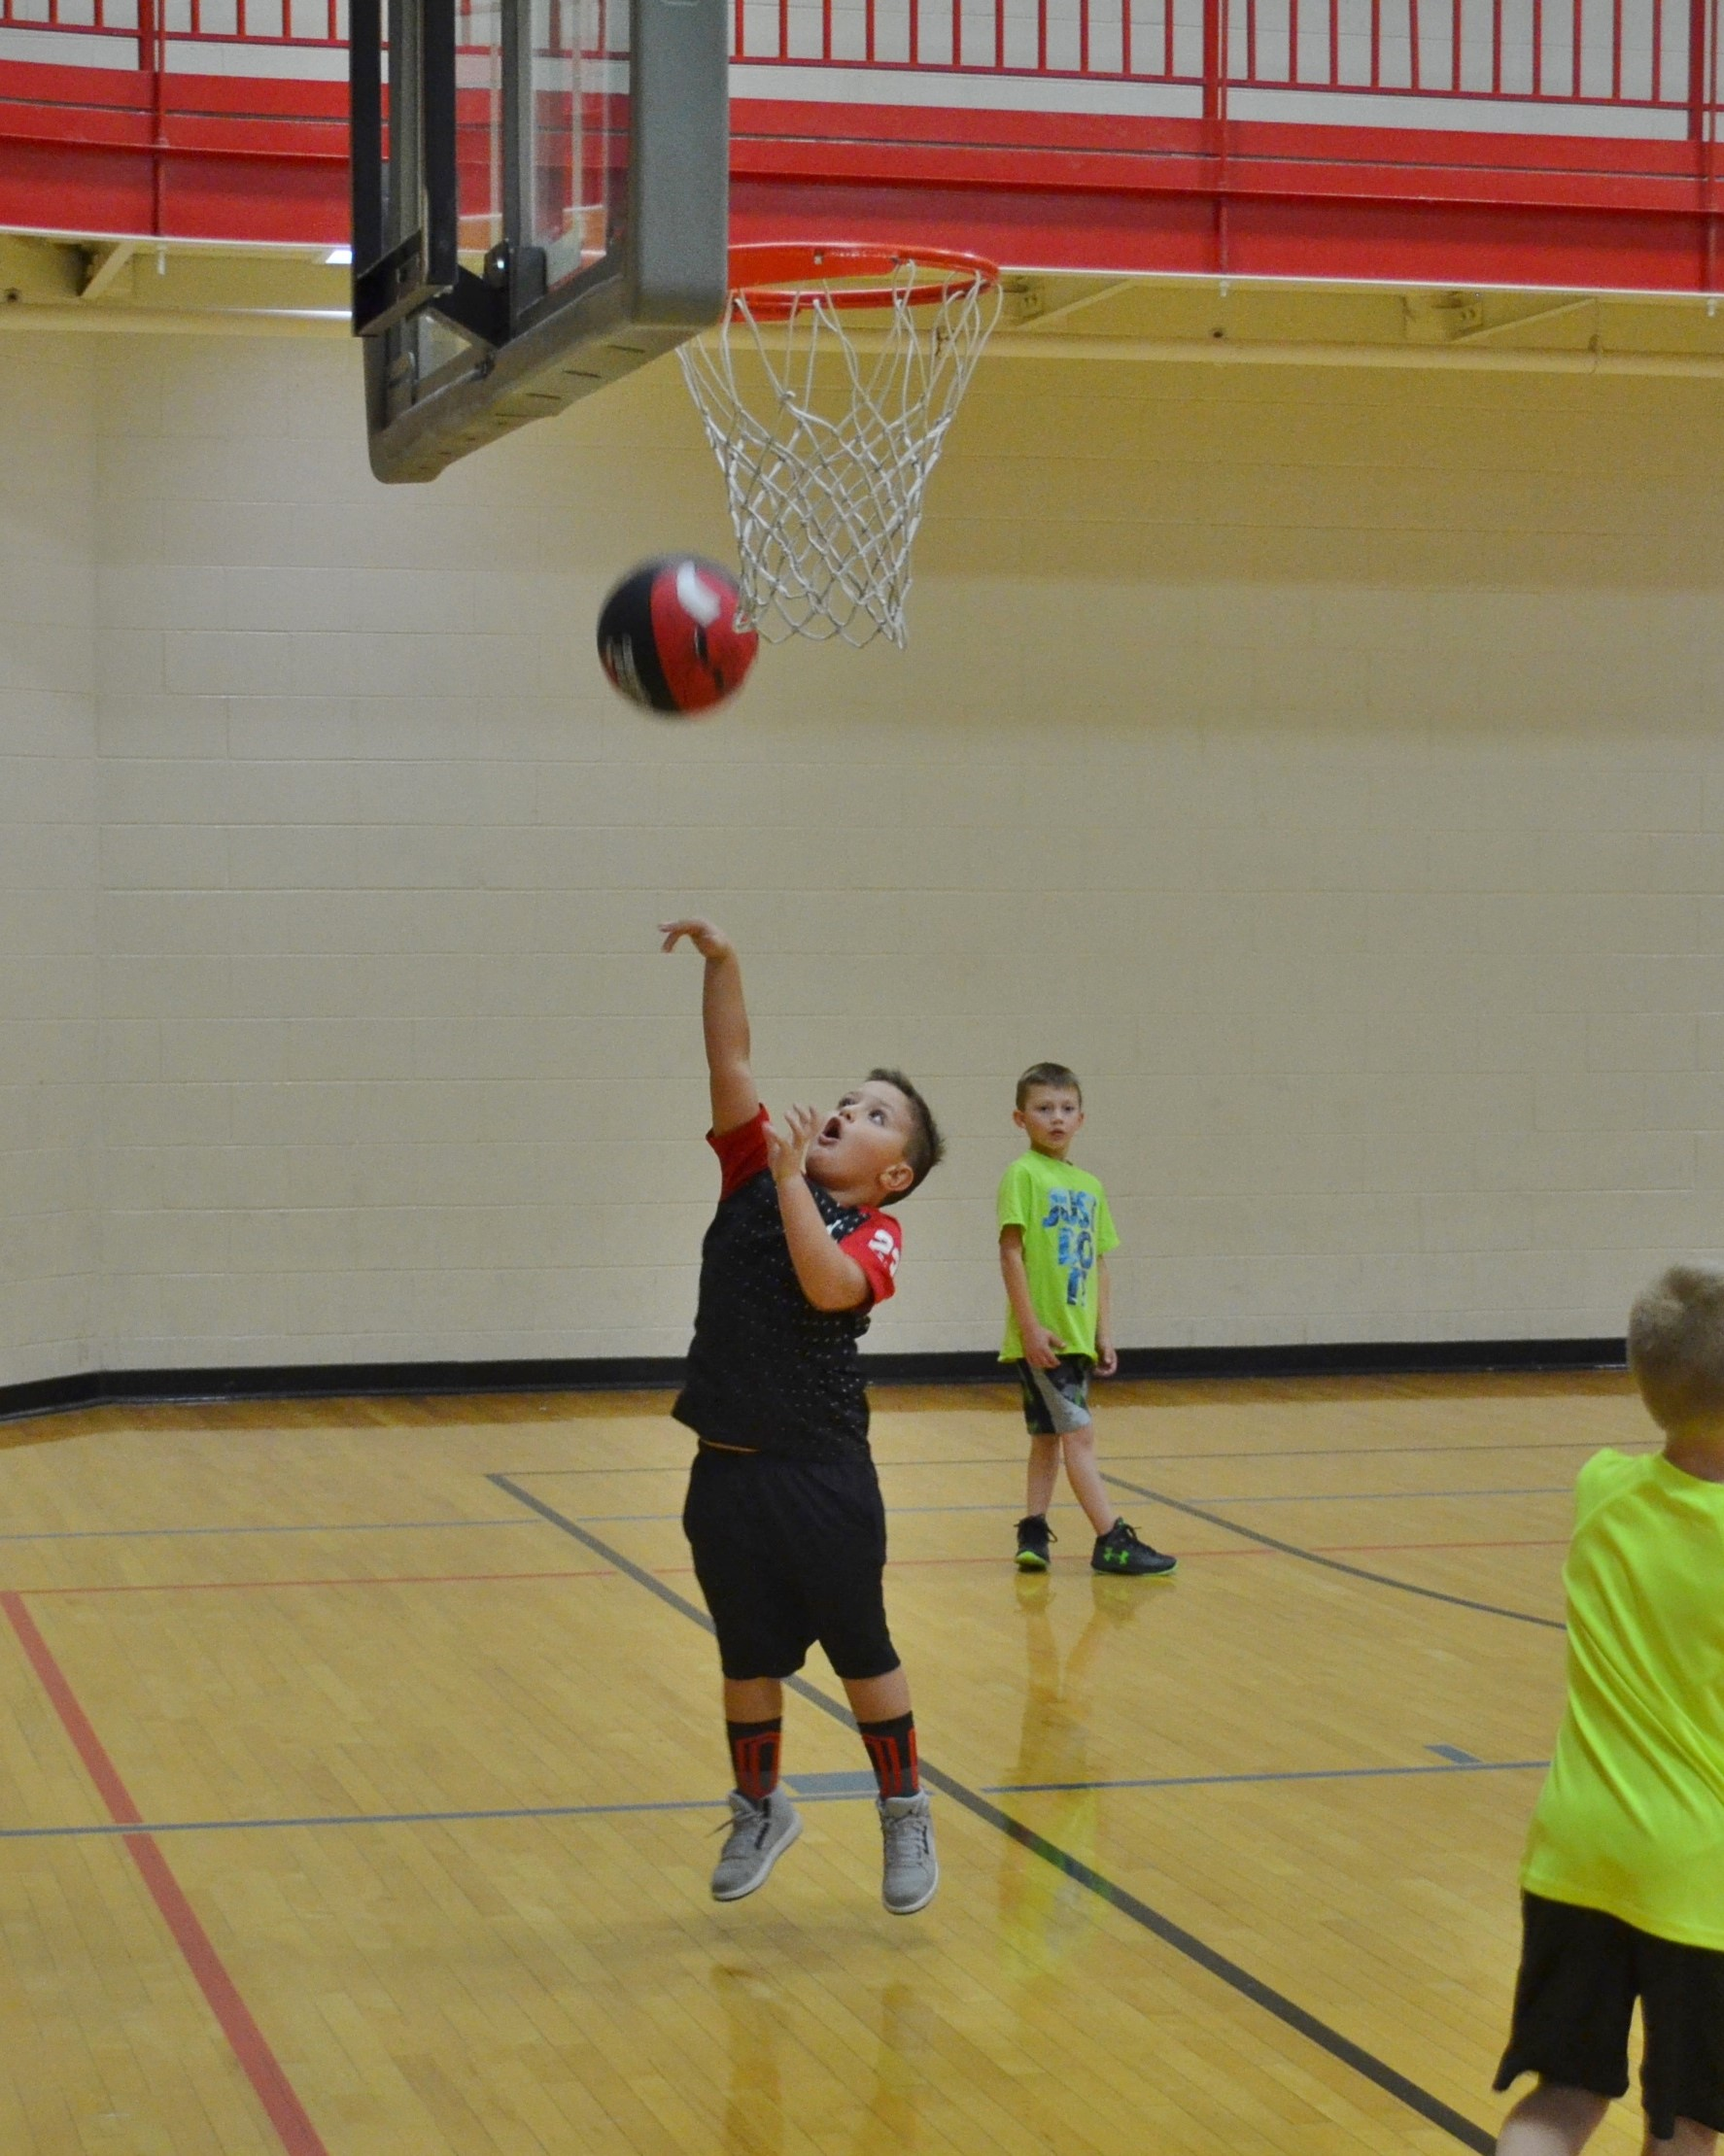 Boy shooting a basketball.JPG